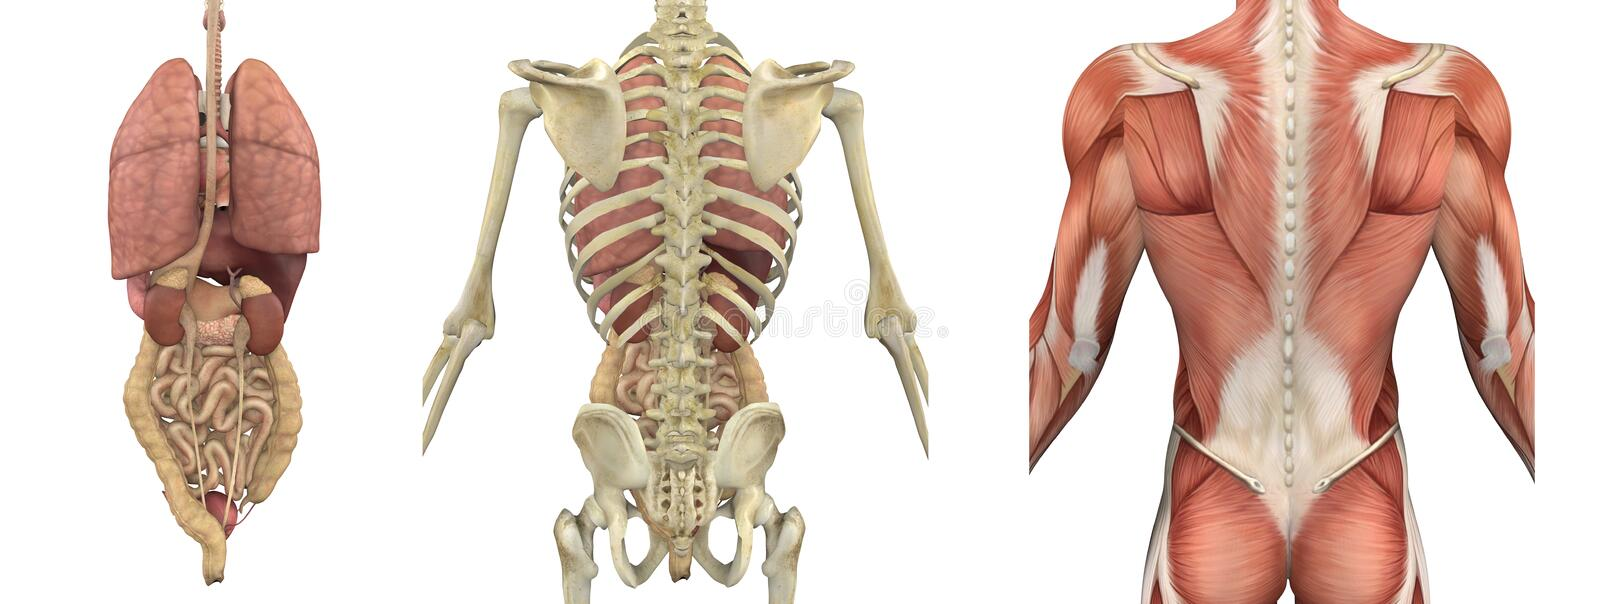 Anatomical Overlays Of The Torso - Backside Royalty Free Stock Images